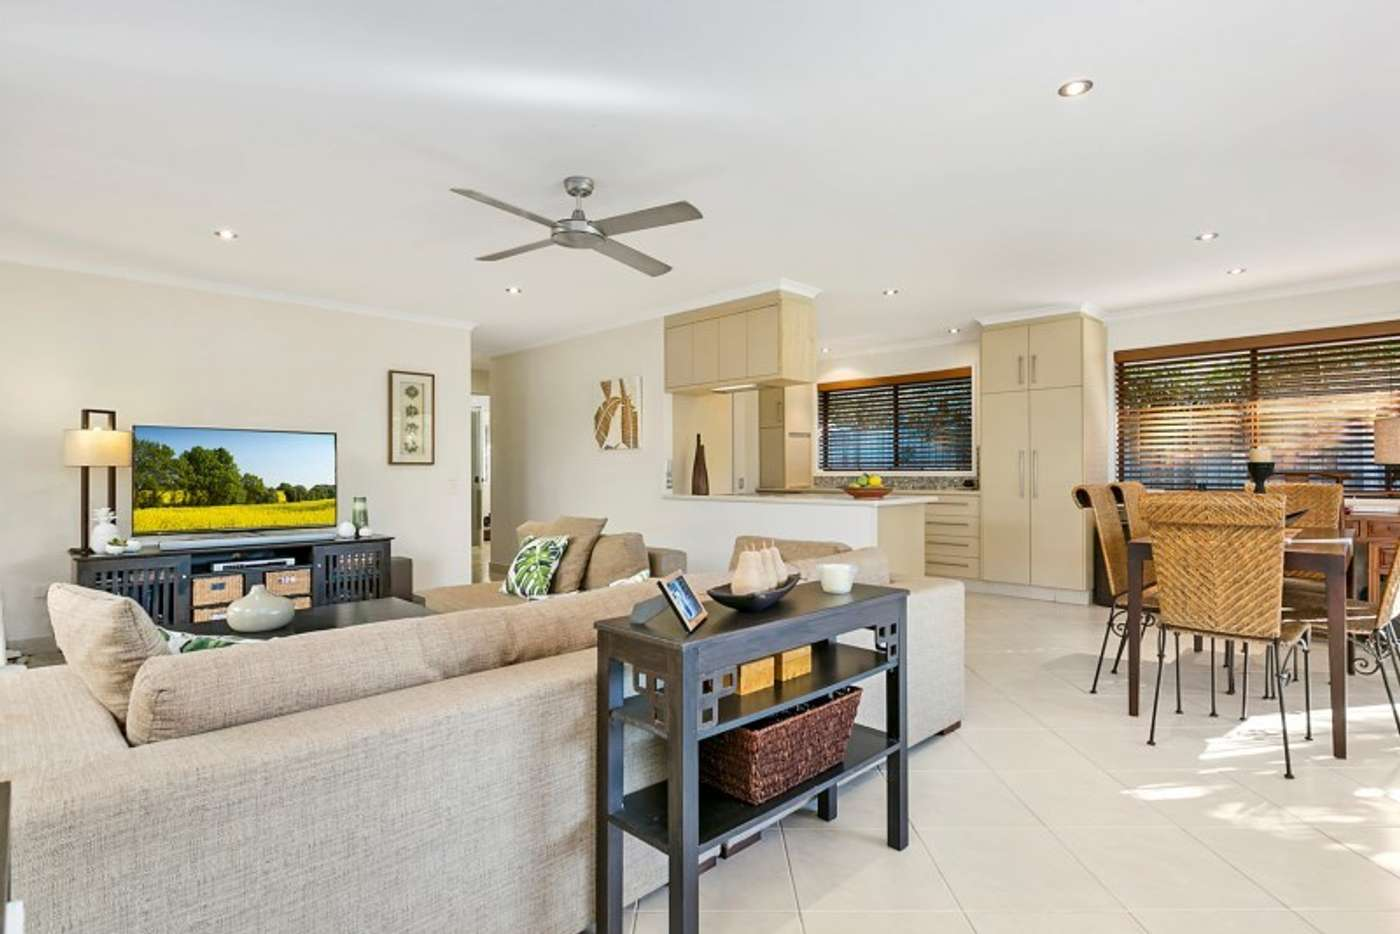 Sixth view of Homely house listing, 7 Koel Street, Noosaville QLD 4566